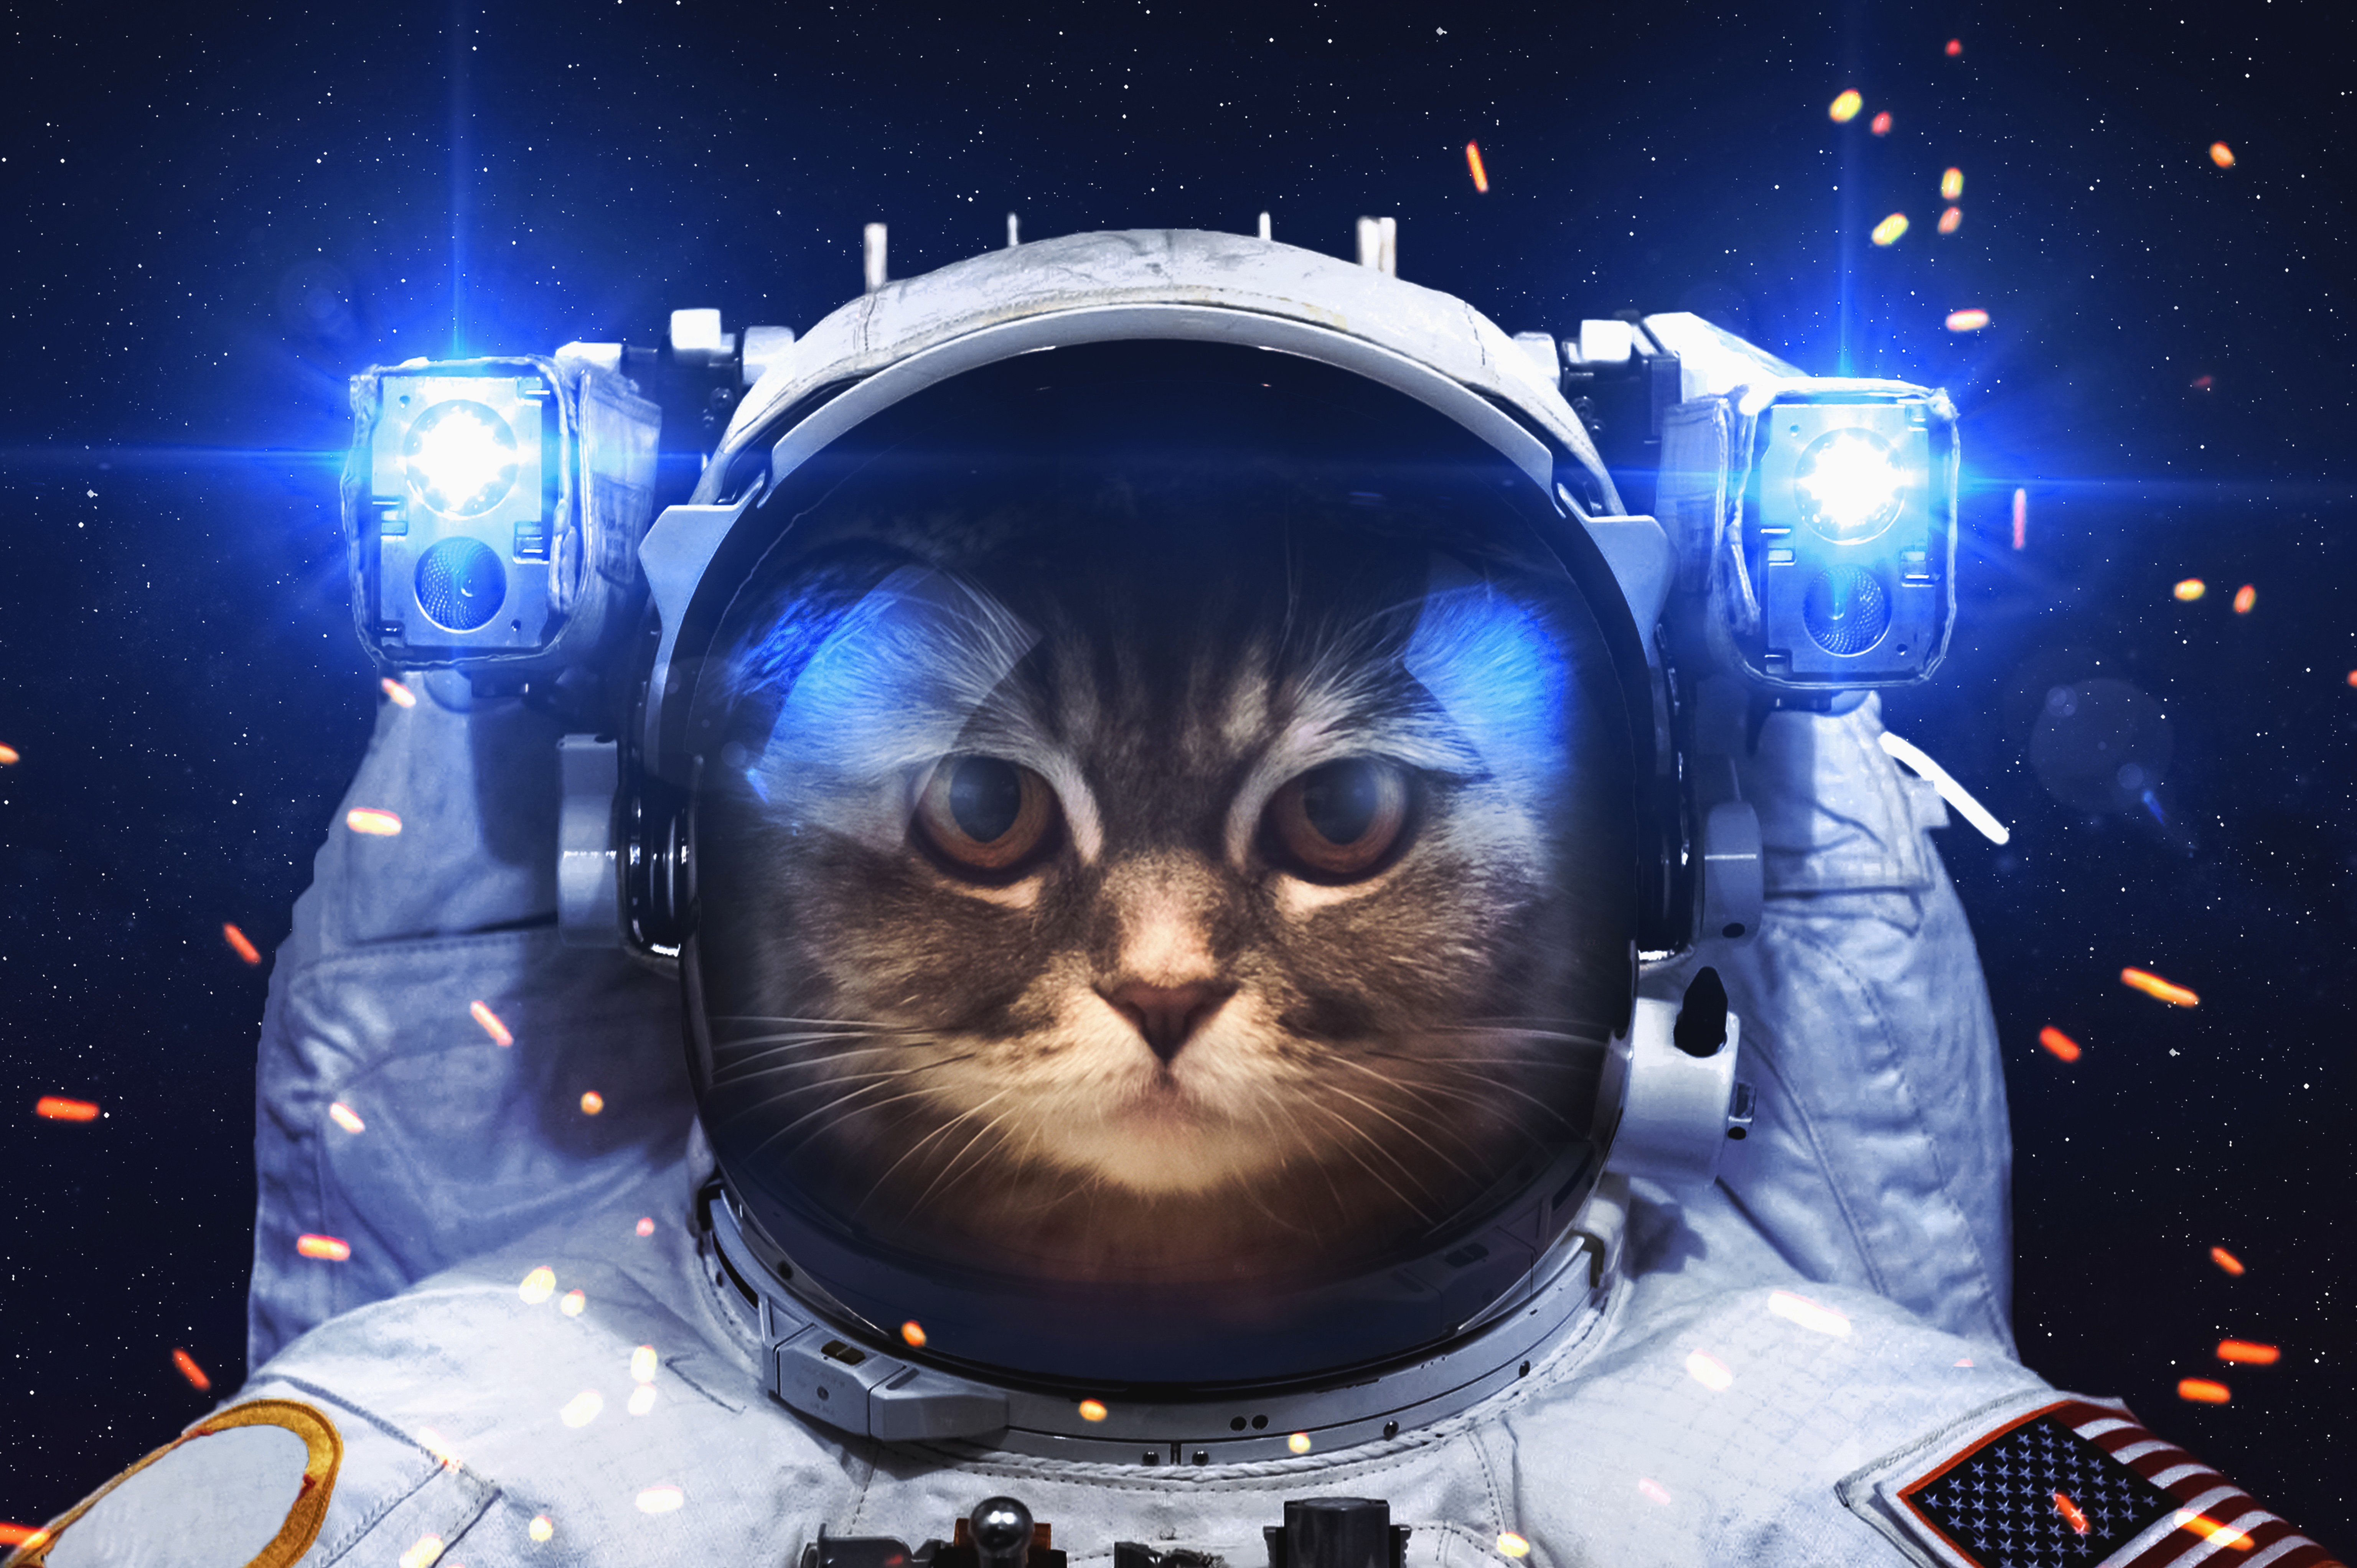 Astronaut cat hd others 4k wallpapers images - Space wallpaper 4k for mobile ...